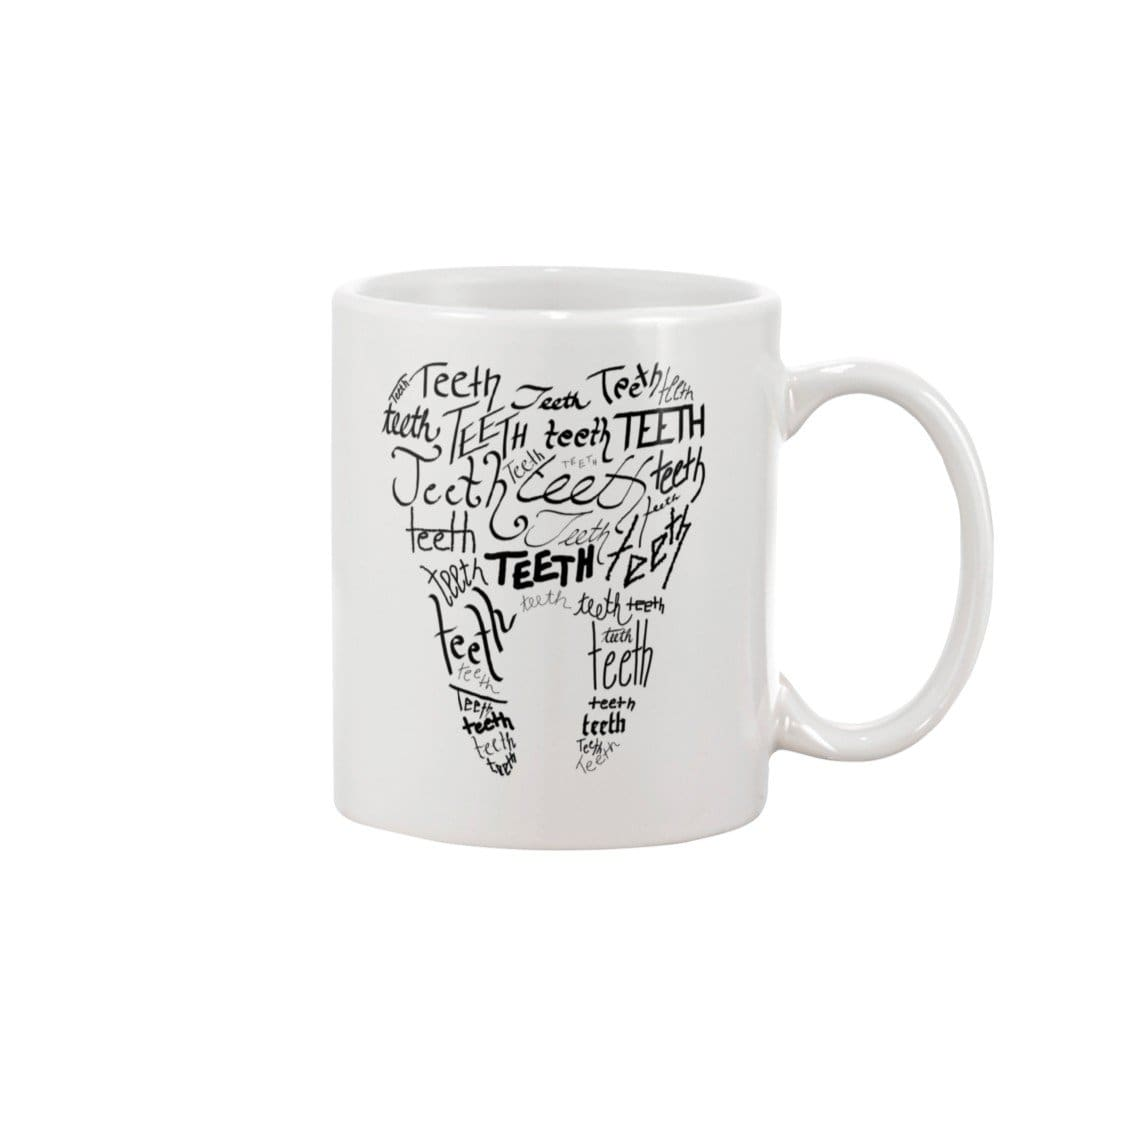 Dice Priori Teeth Tooth 15oz Coffee Mug - White / 15OZ - Dice Priori